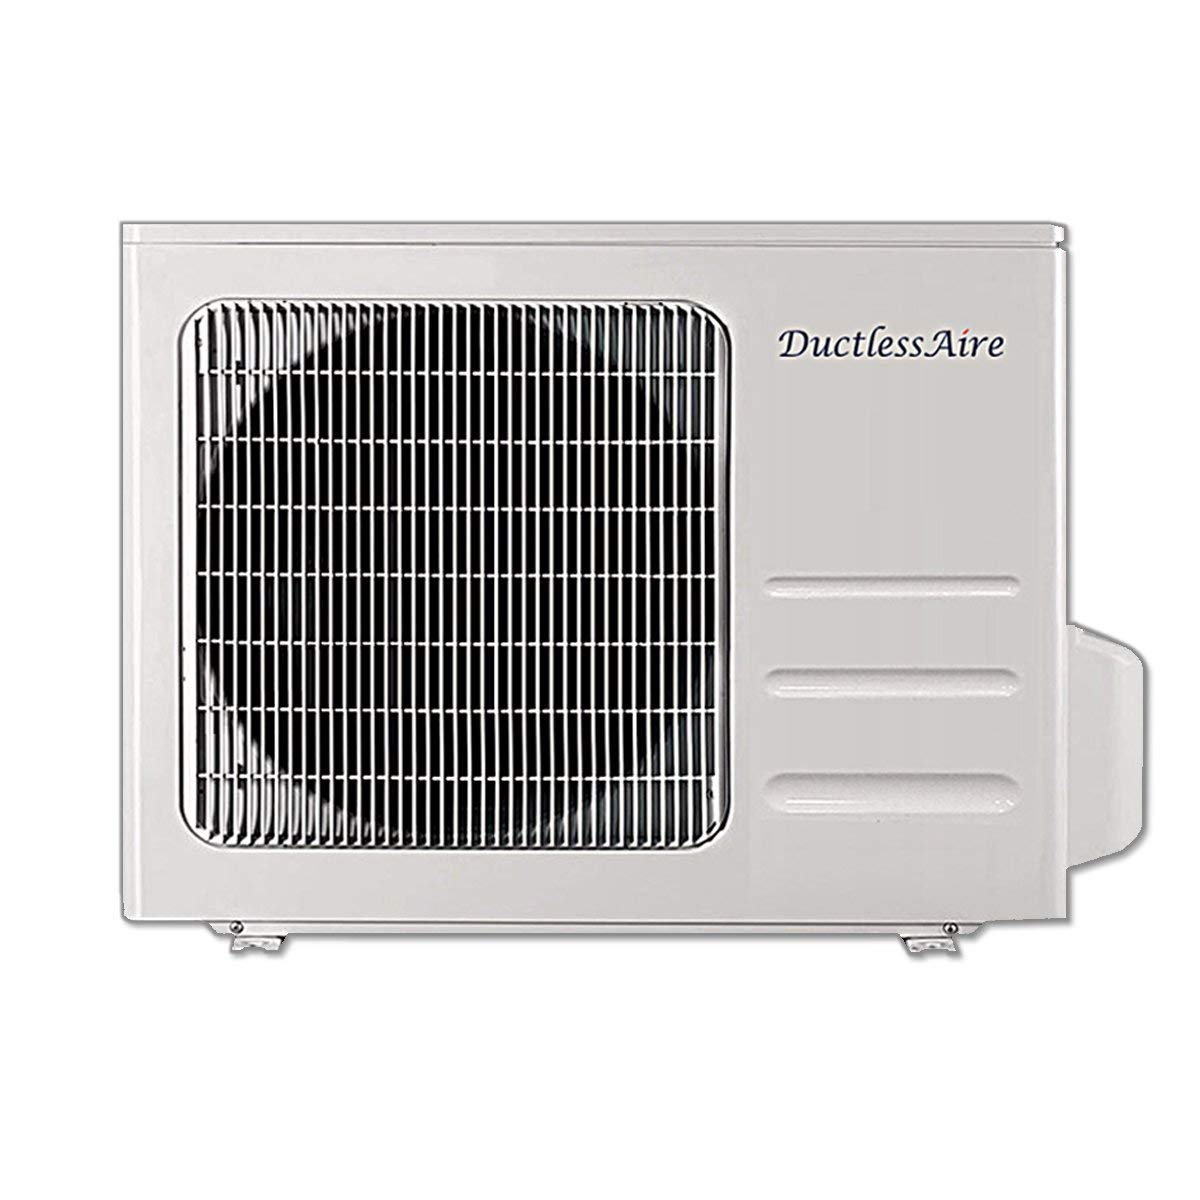 Ductlessaire Energy Star Ductless Mini Split Air